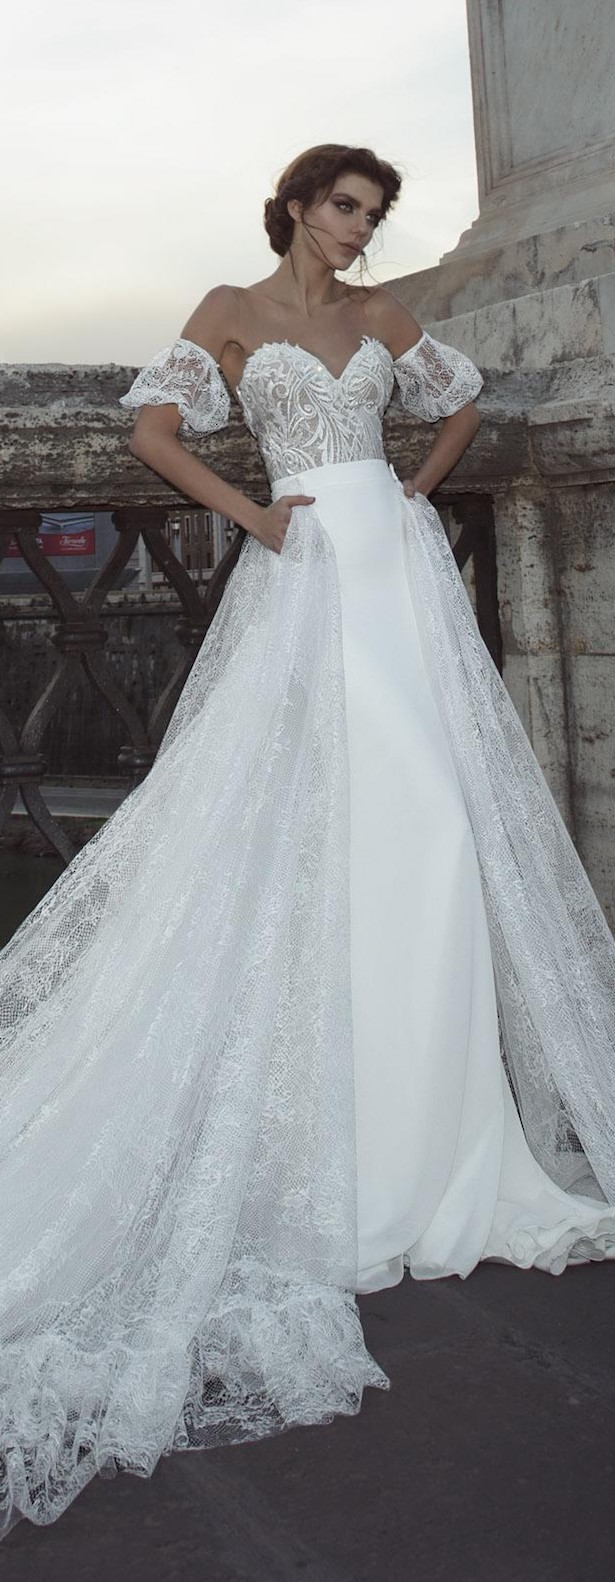 Beautiful Wedding Dresses Ma Picture Collection - All Wedding ...